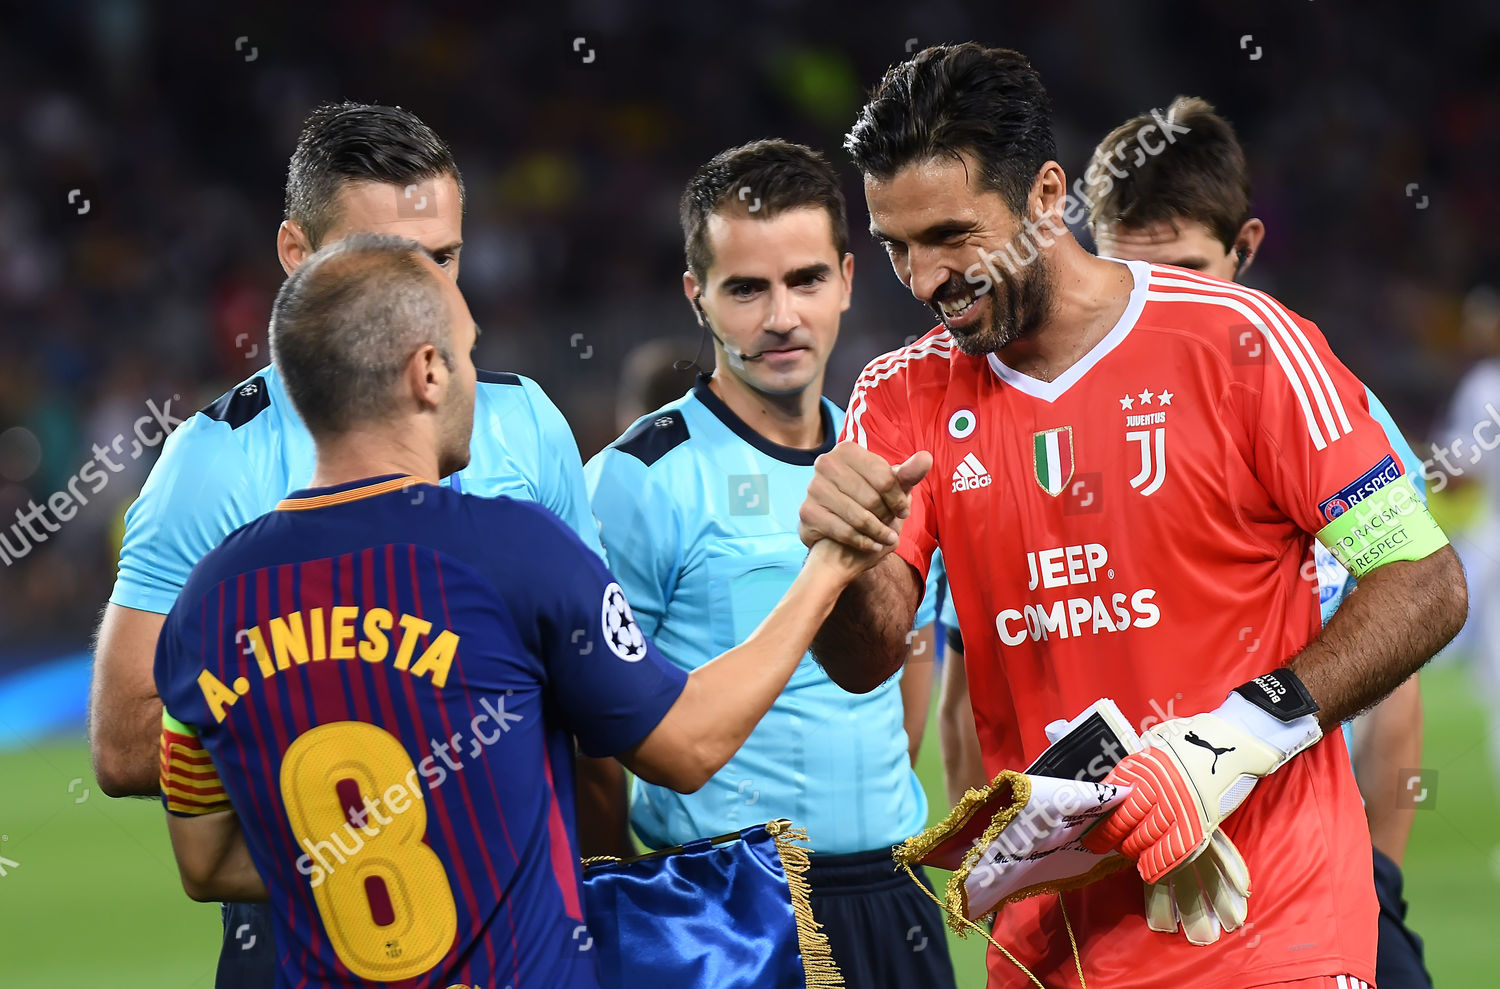 Gianluigi Buffon Juventus Fc Greets Andres Iniesta Editorial Stock Photo Stock Image Shutterstock